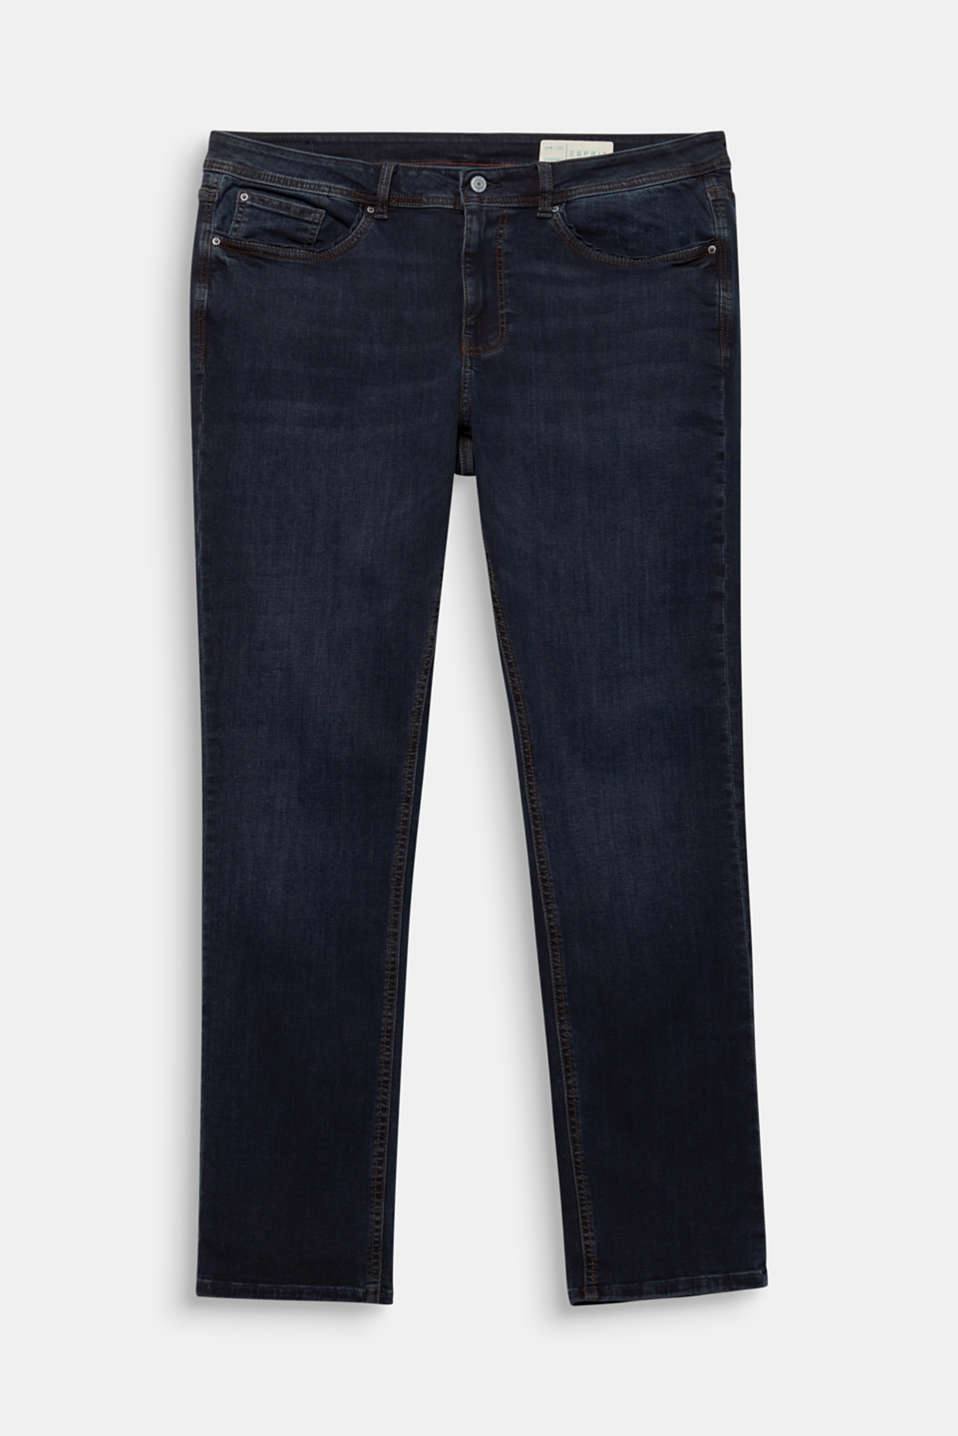 CURVY jeans with piped pockets, BLUE DARK WASH, detail image number 6